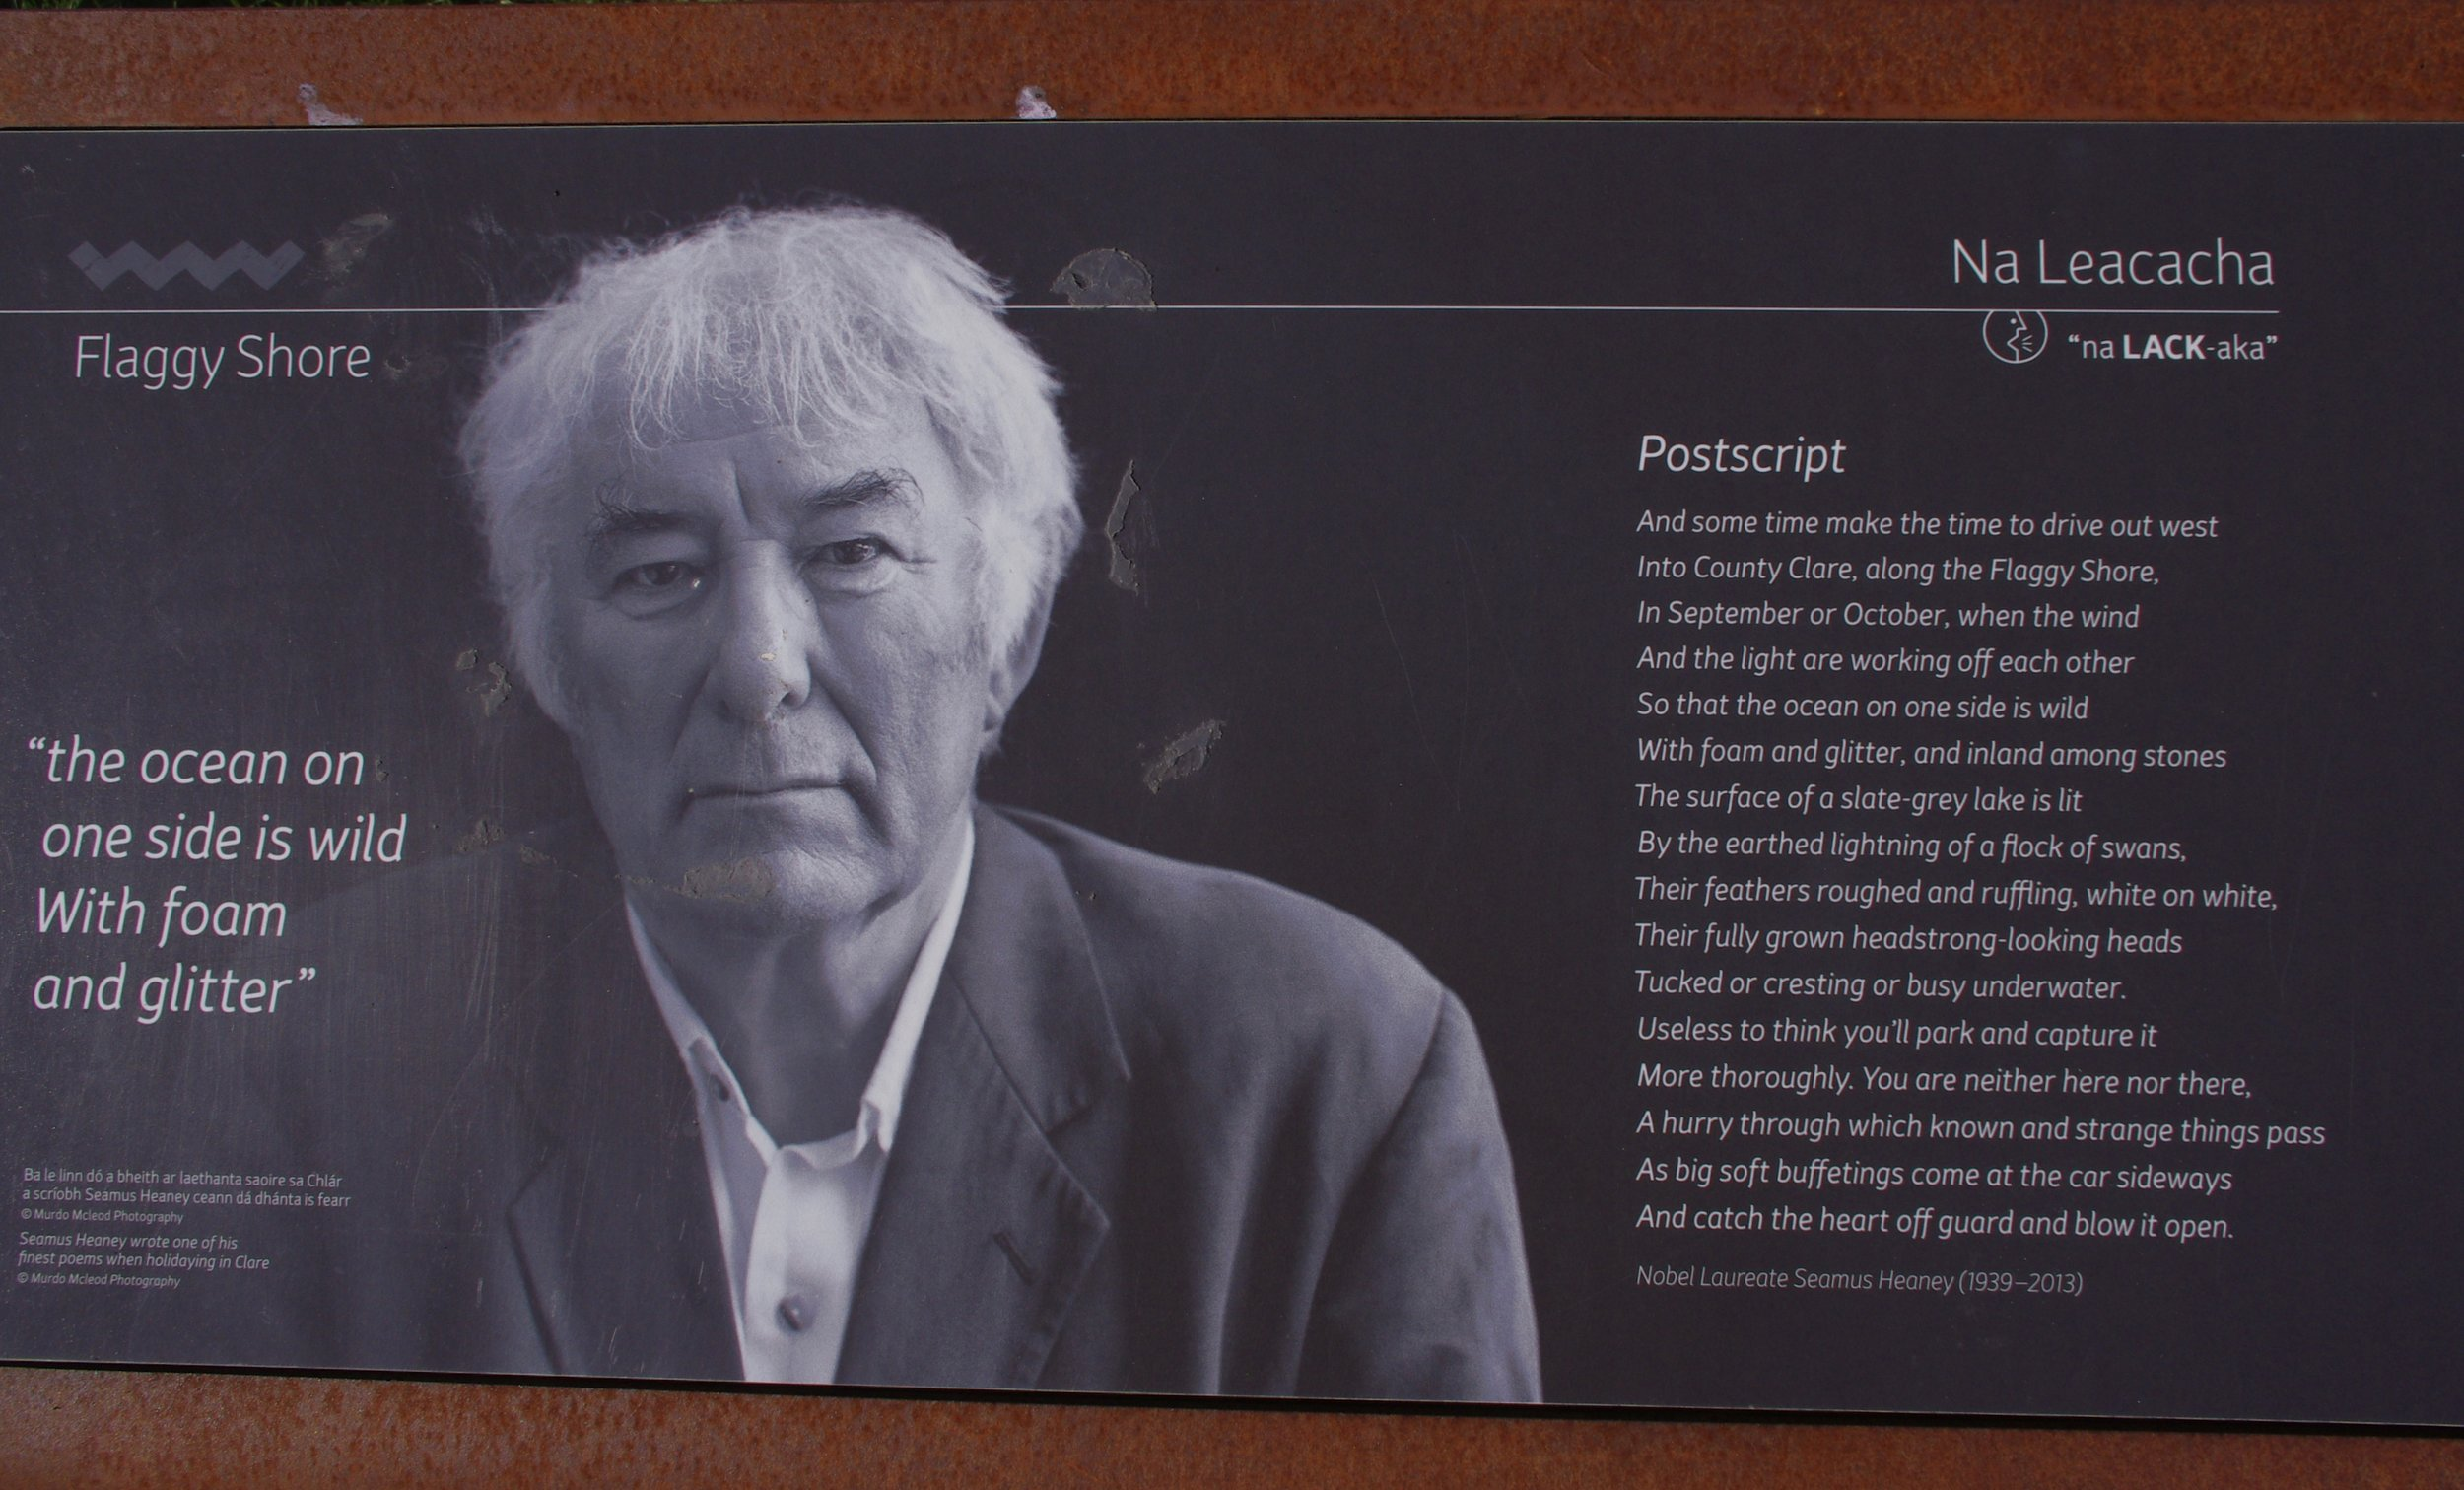 Seamus Heaney at the Flaggy Shore